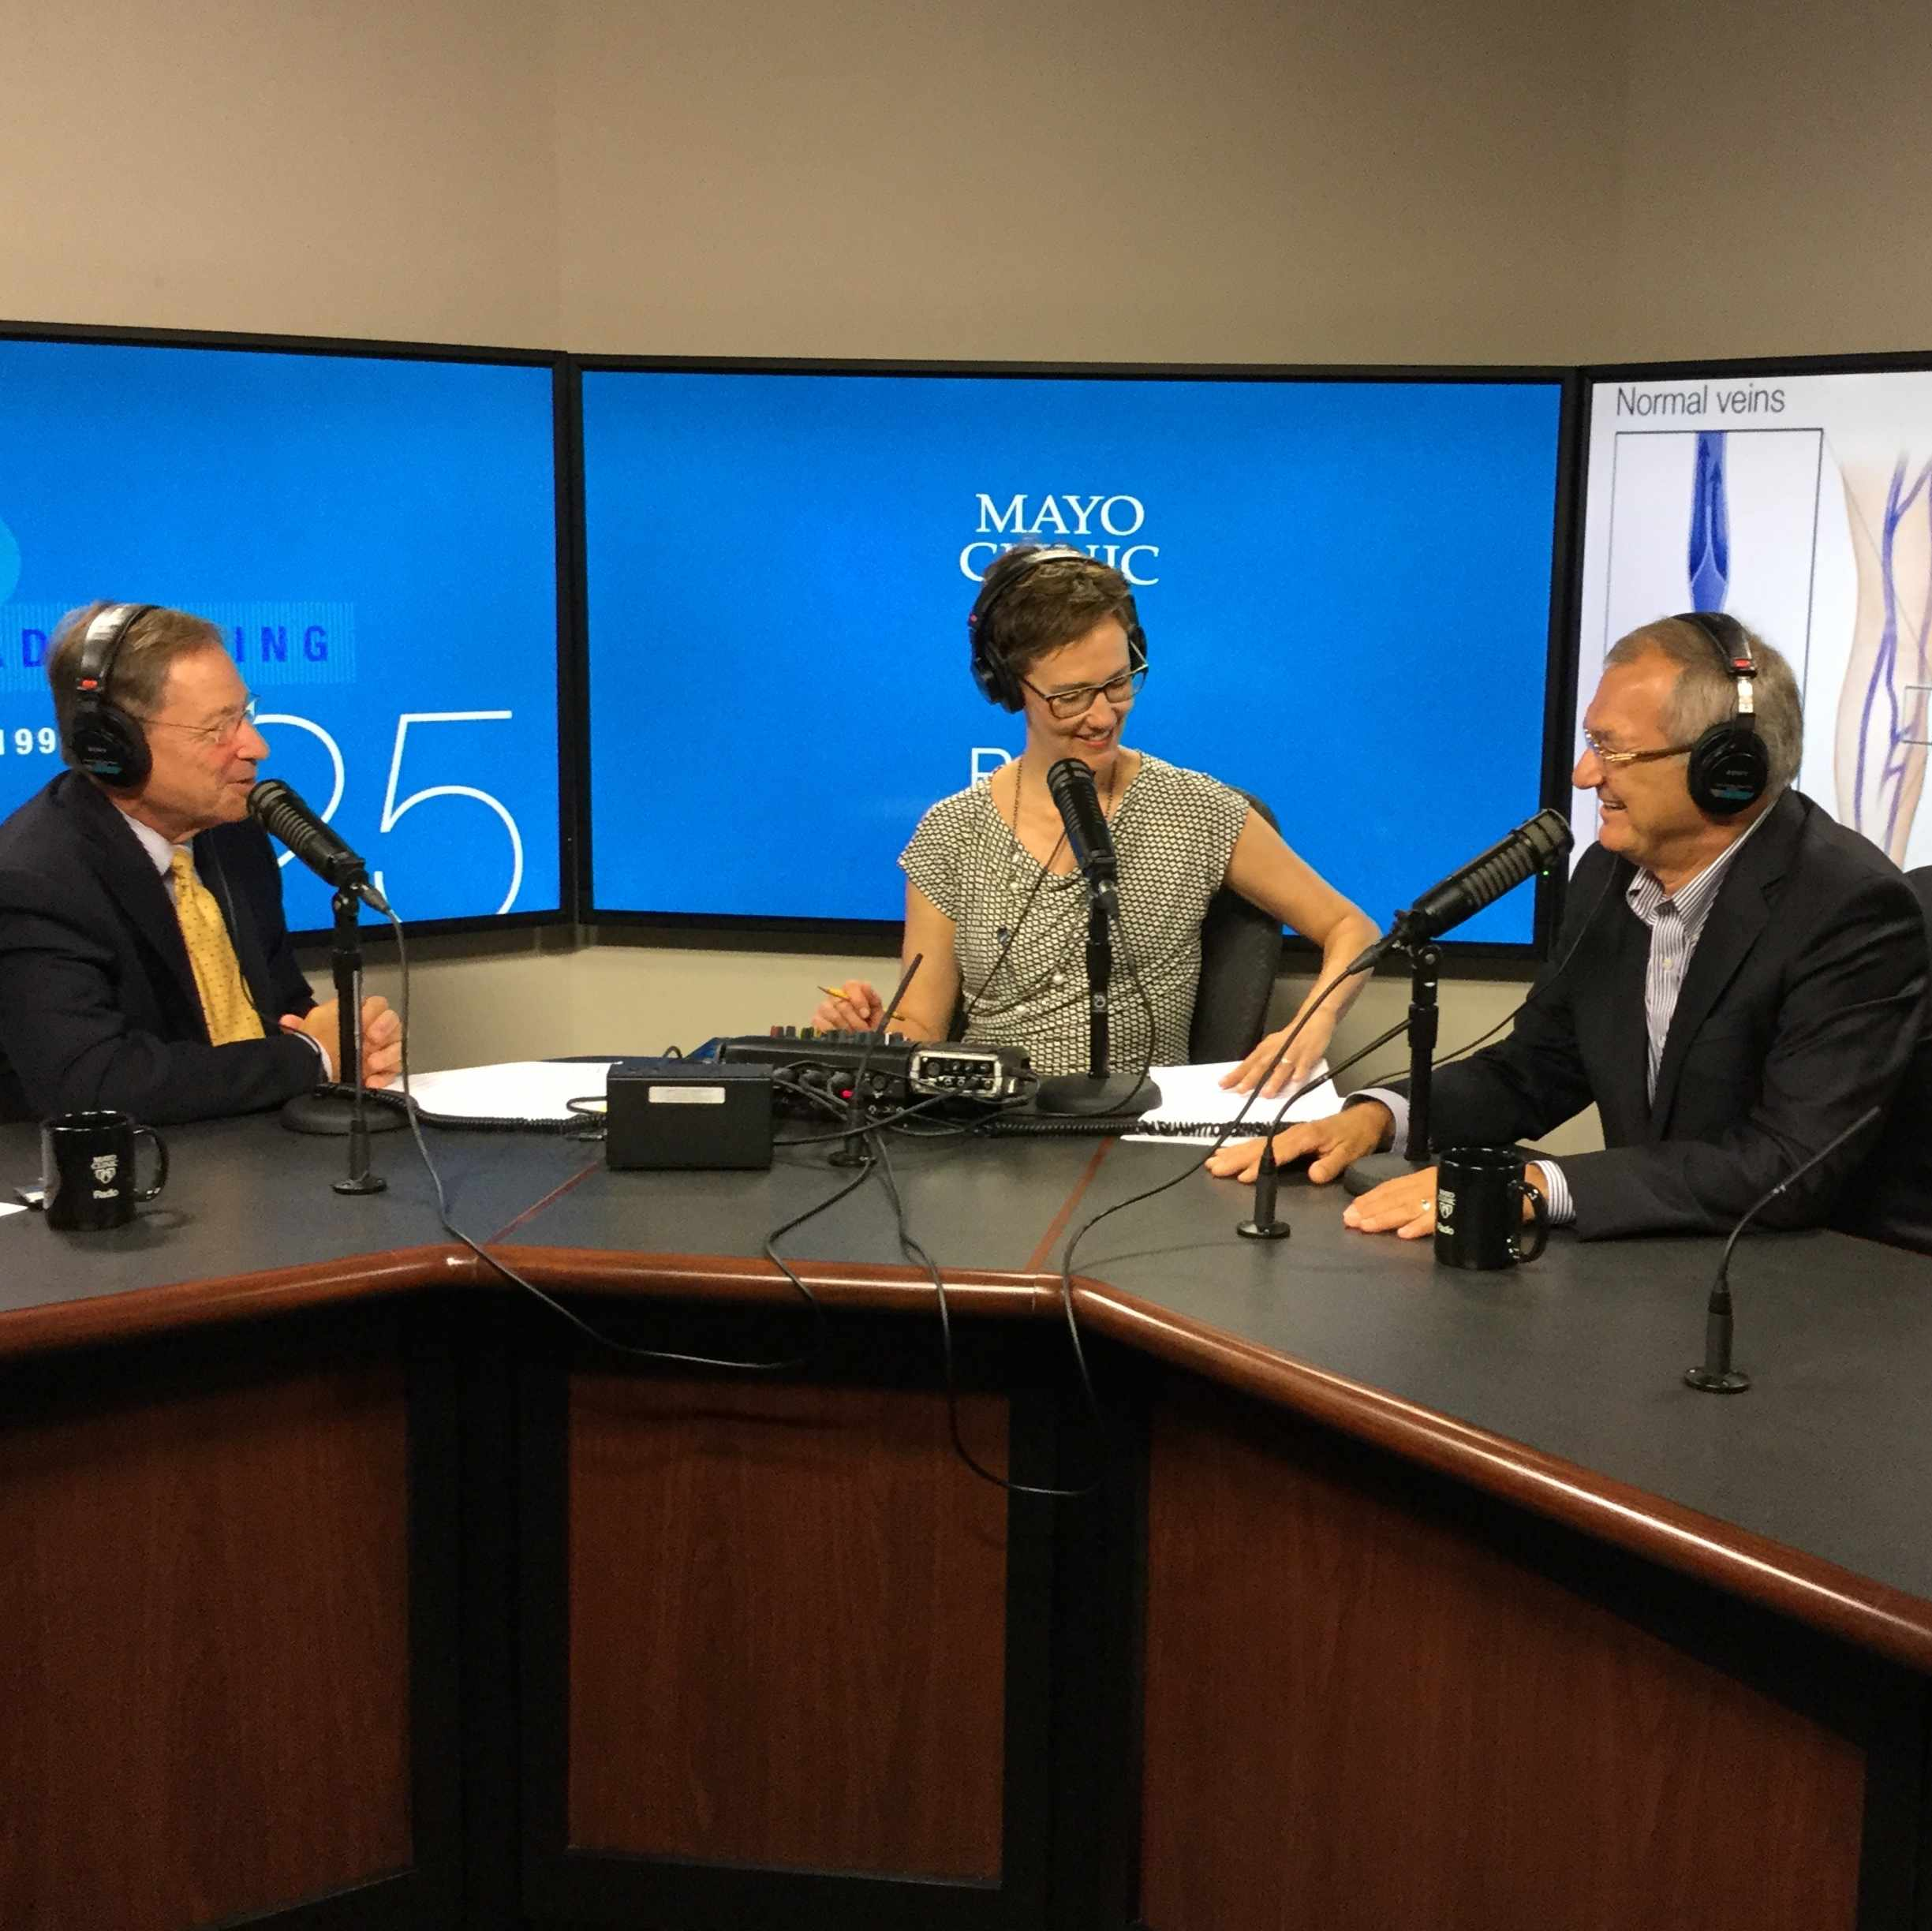 Dr. Peter Gloviczki being interviewed on Mayo Clinic Radio